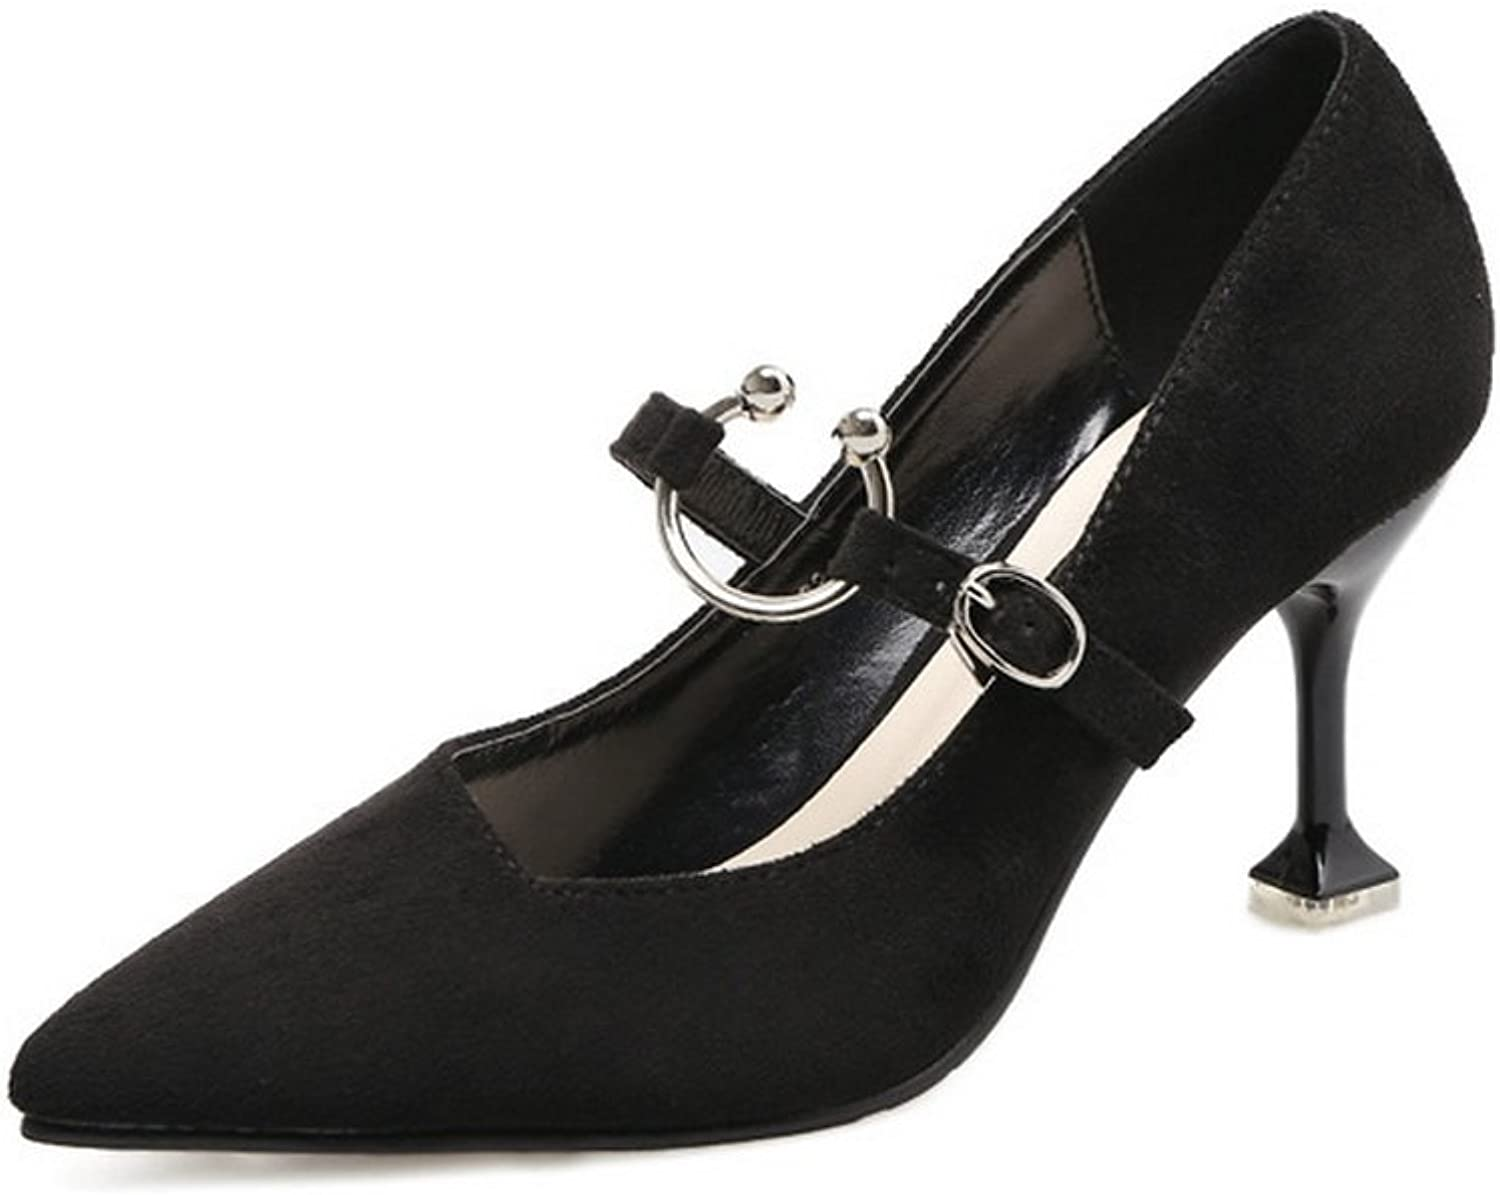 1TO9 Womens Unique Platform Buckle Pointed-Toe Black Suede Pumps shoes - 6.5 B(M) US